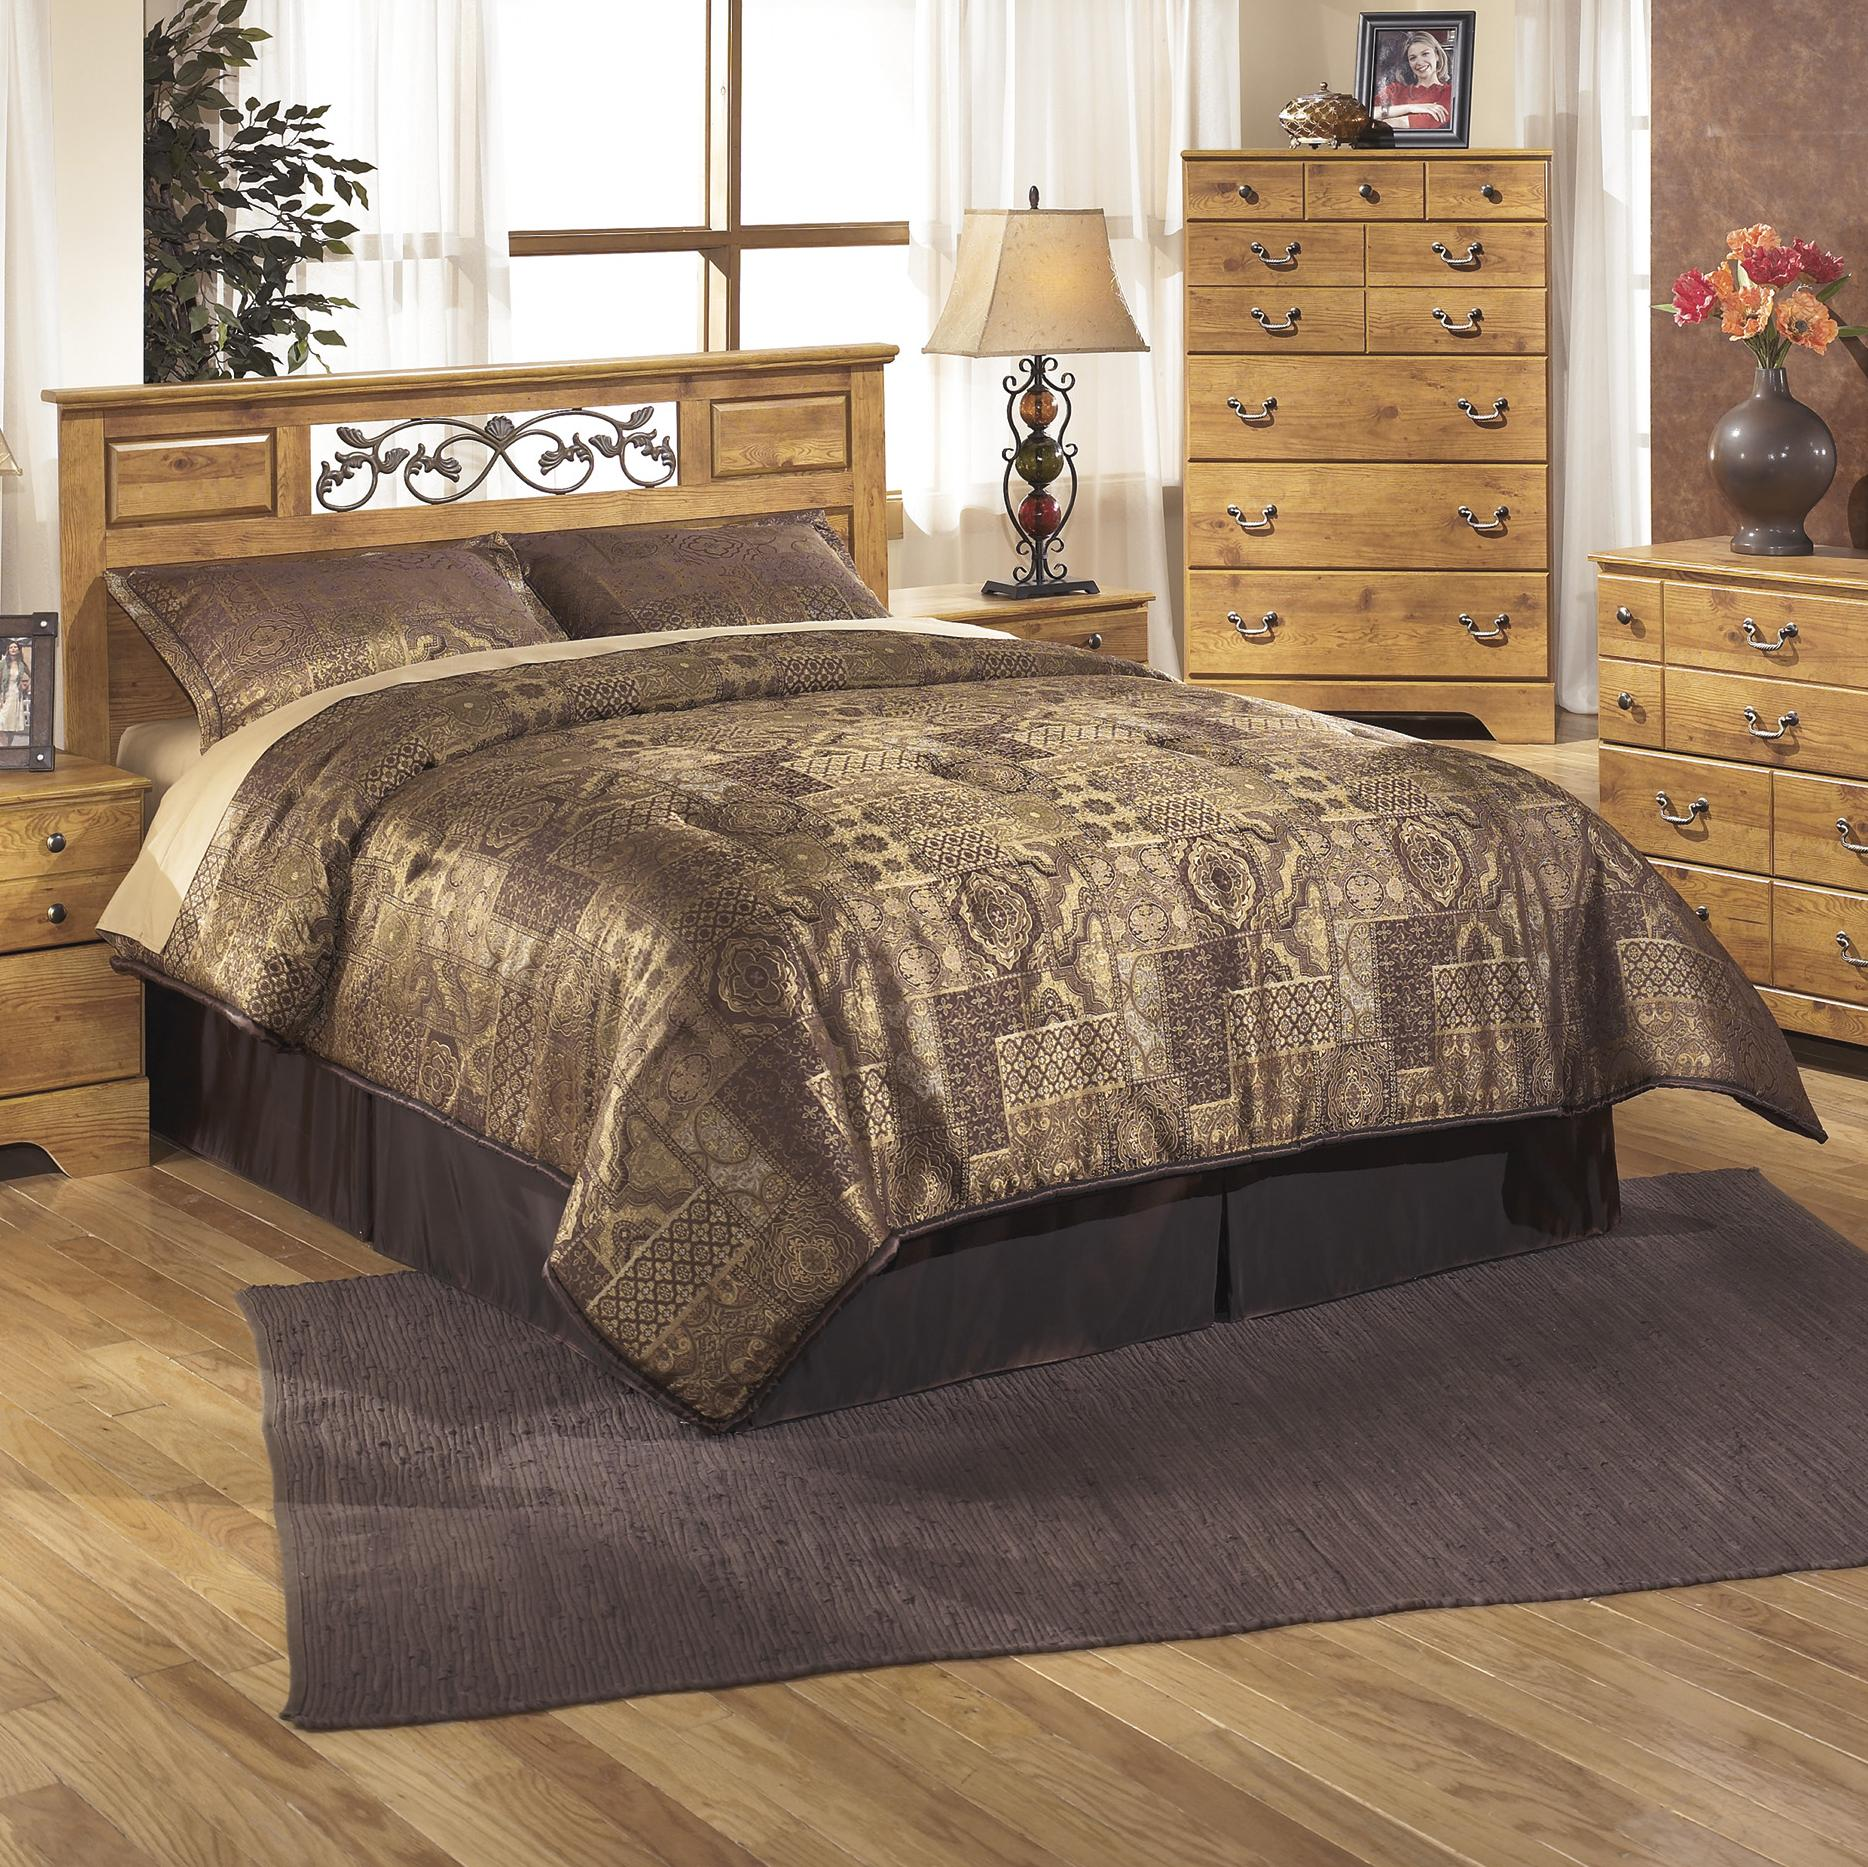 Signature design by ashley bittersweet b219 55 full queen - Ashley furniture full bedroom sets ...